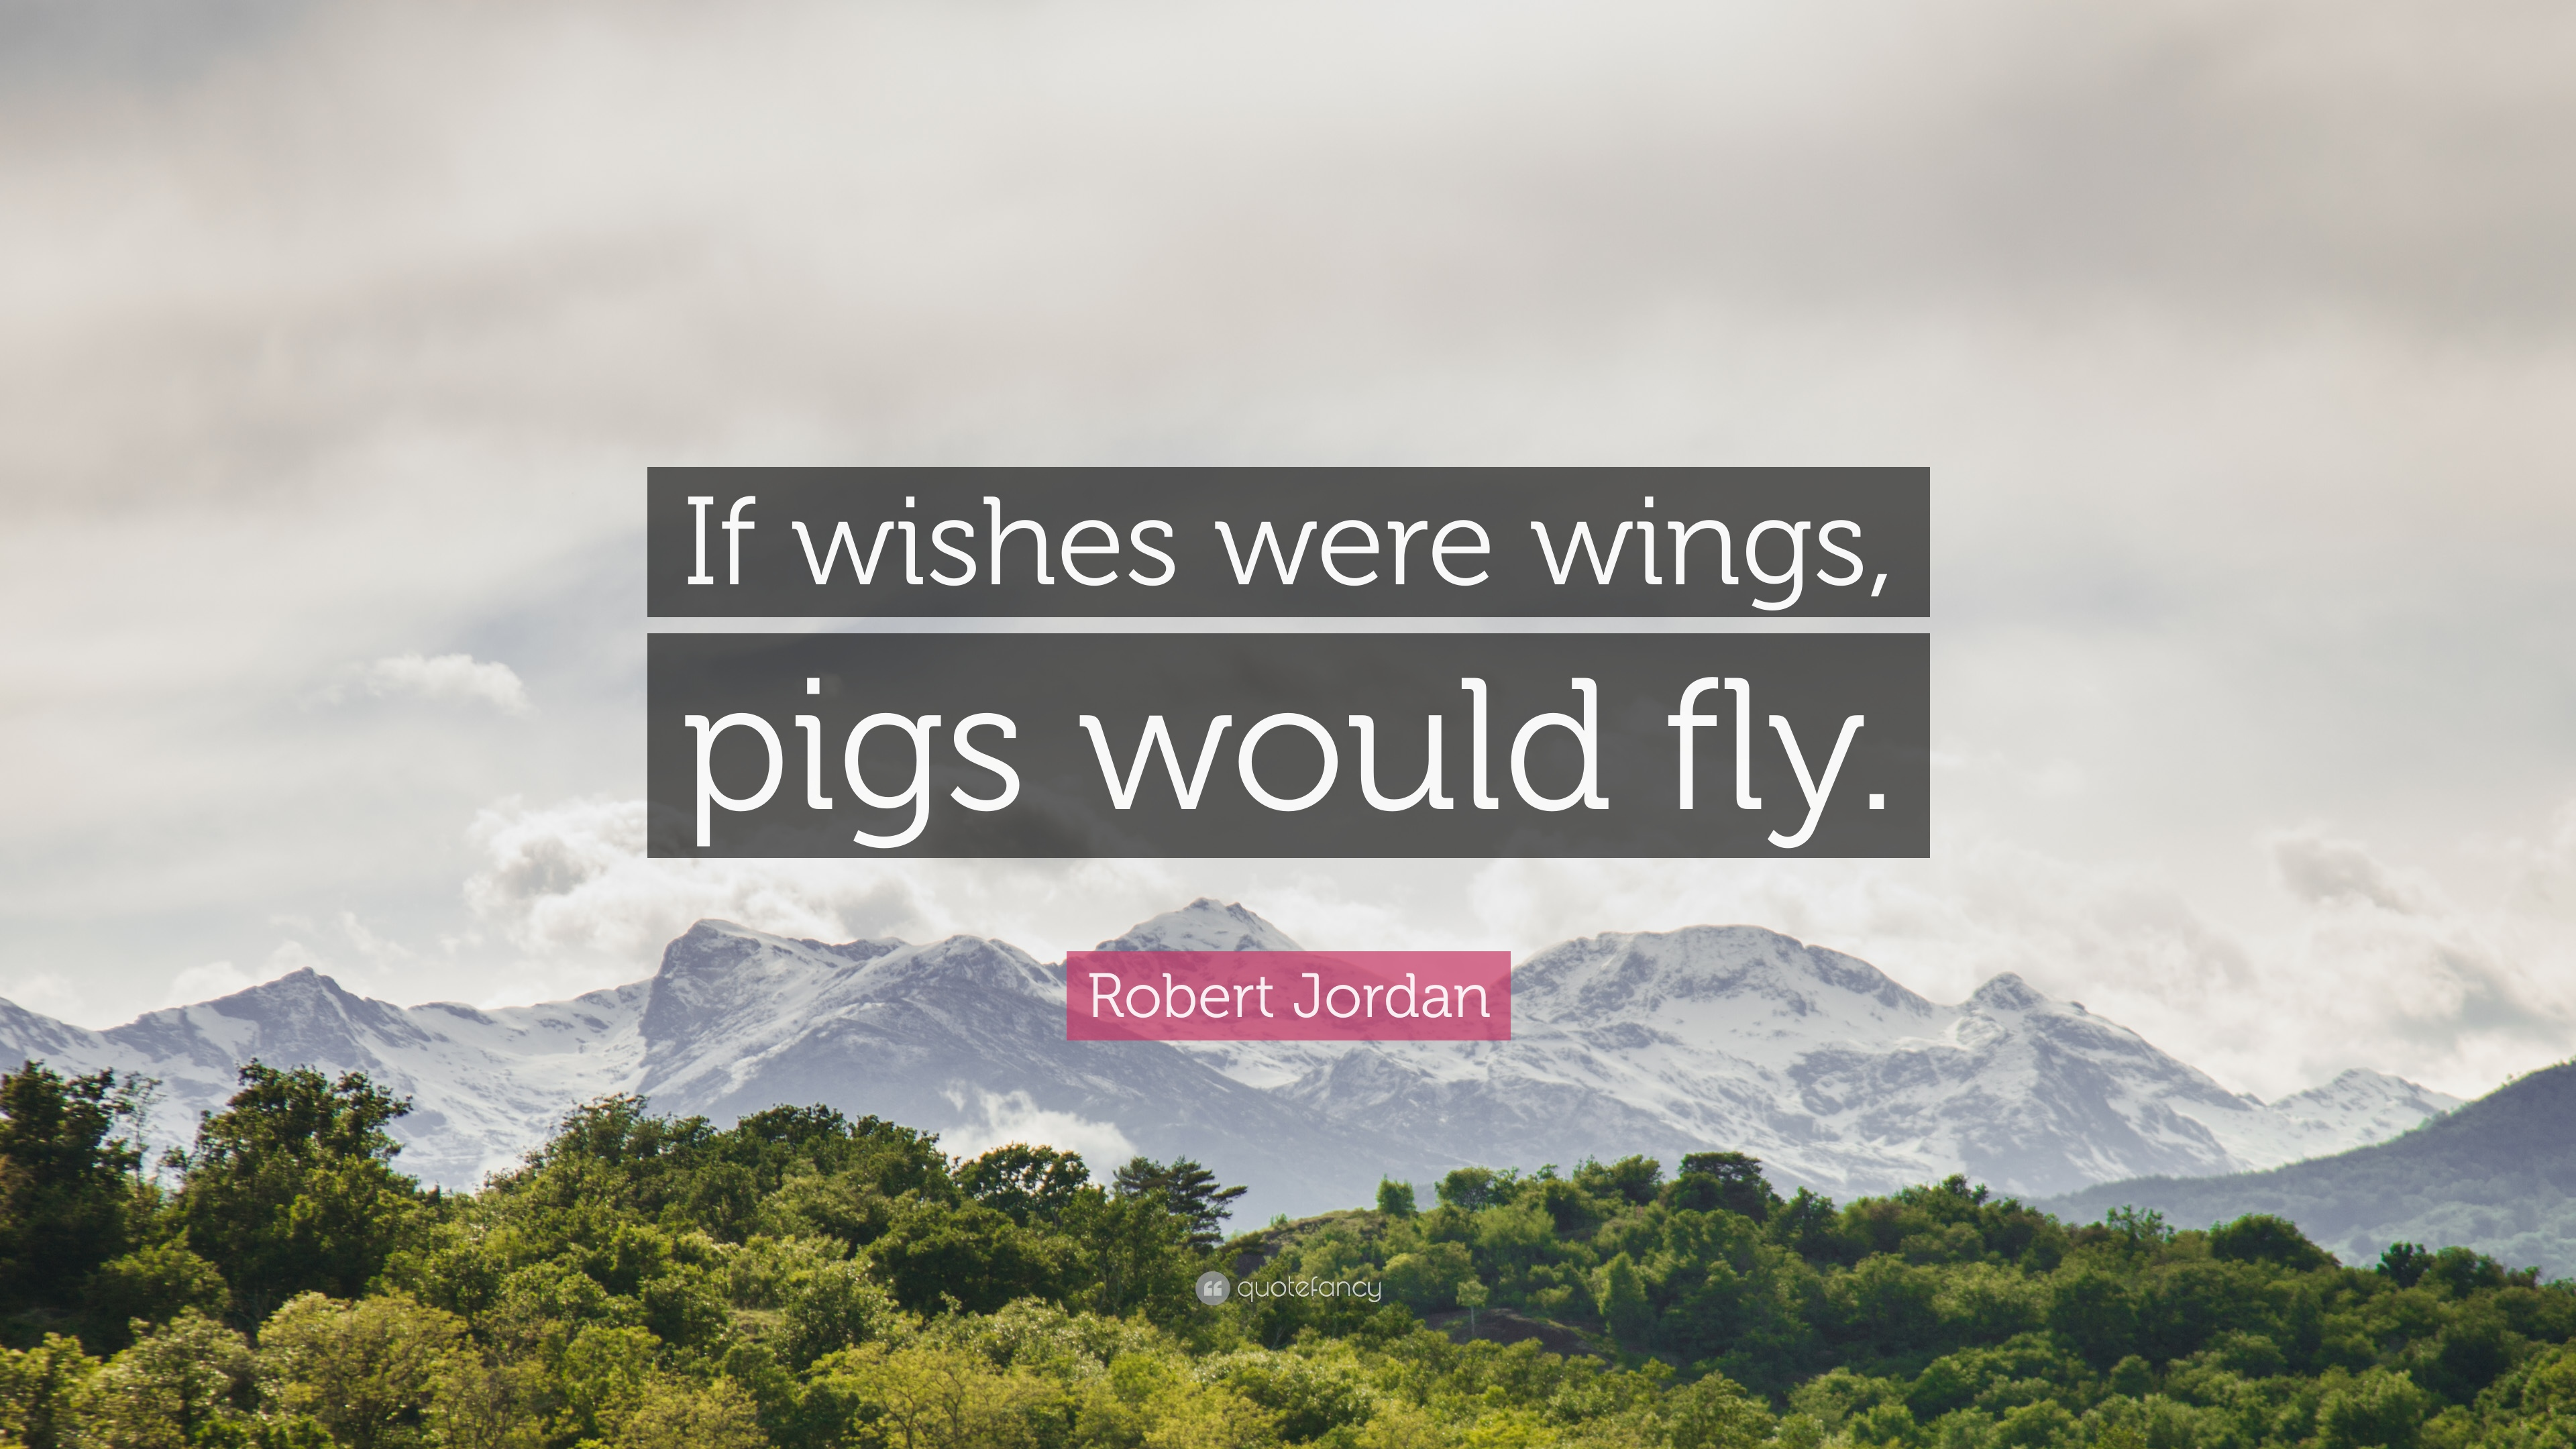 "Robert Jordan Quote: ""If wishes were wings, pigs would fly."" (9 wallpapers) - Quotefancy"